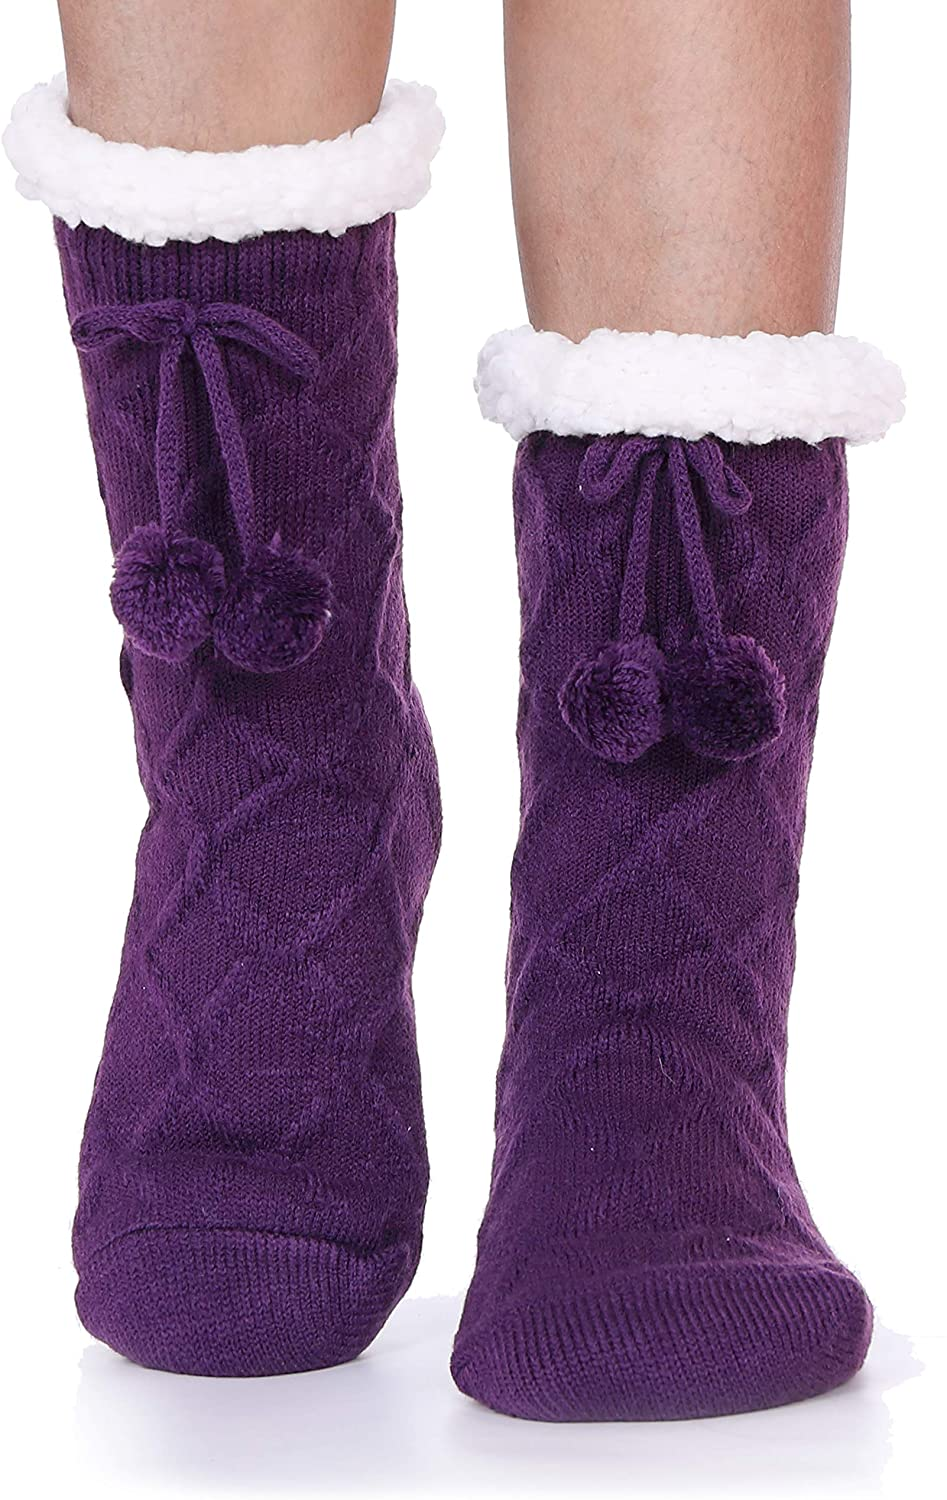 Womens Fuzzy Slipper Socks Knitting Warm Thick Heavy Fleece lined Christmas Stockings Fluffy Winter Socks With Grippers